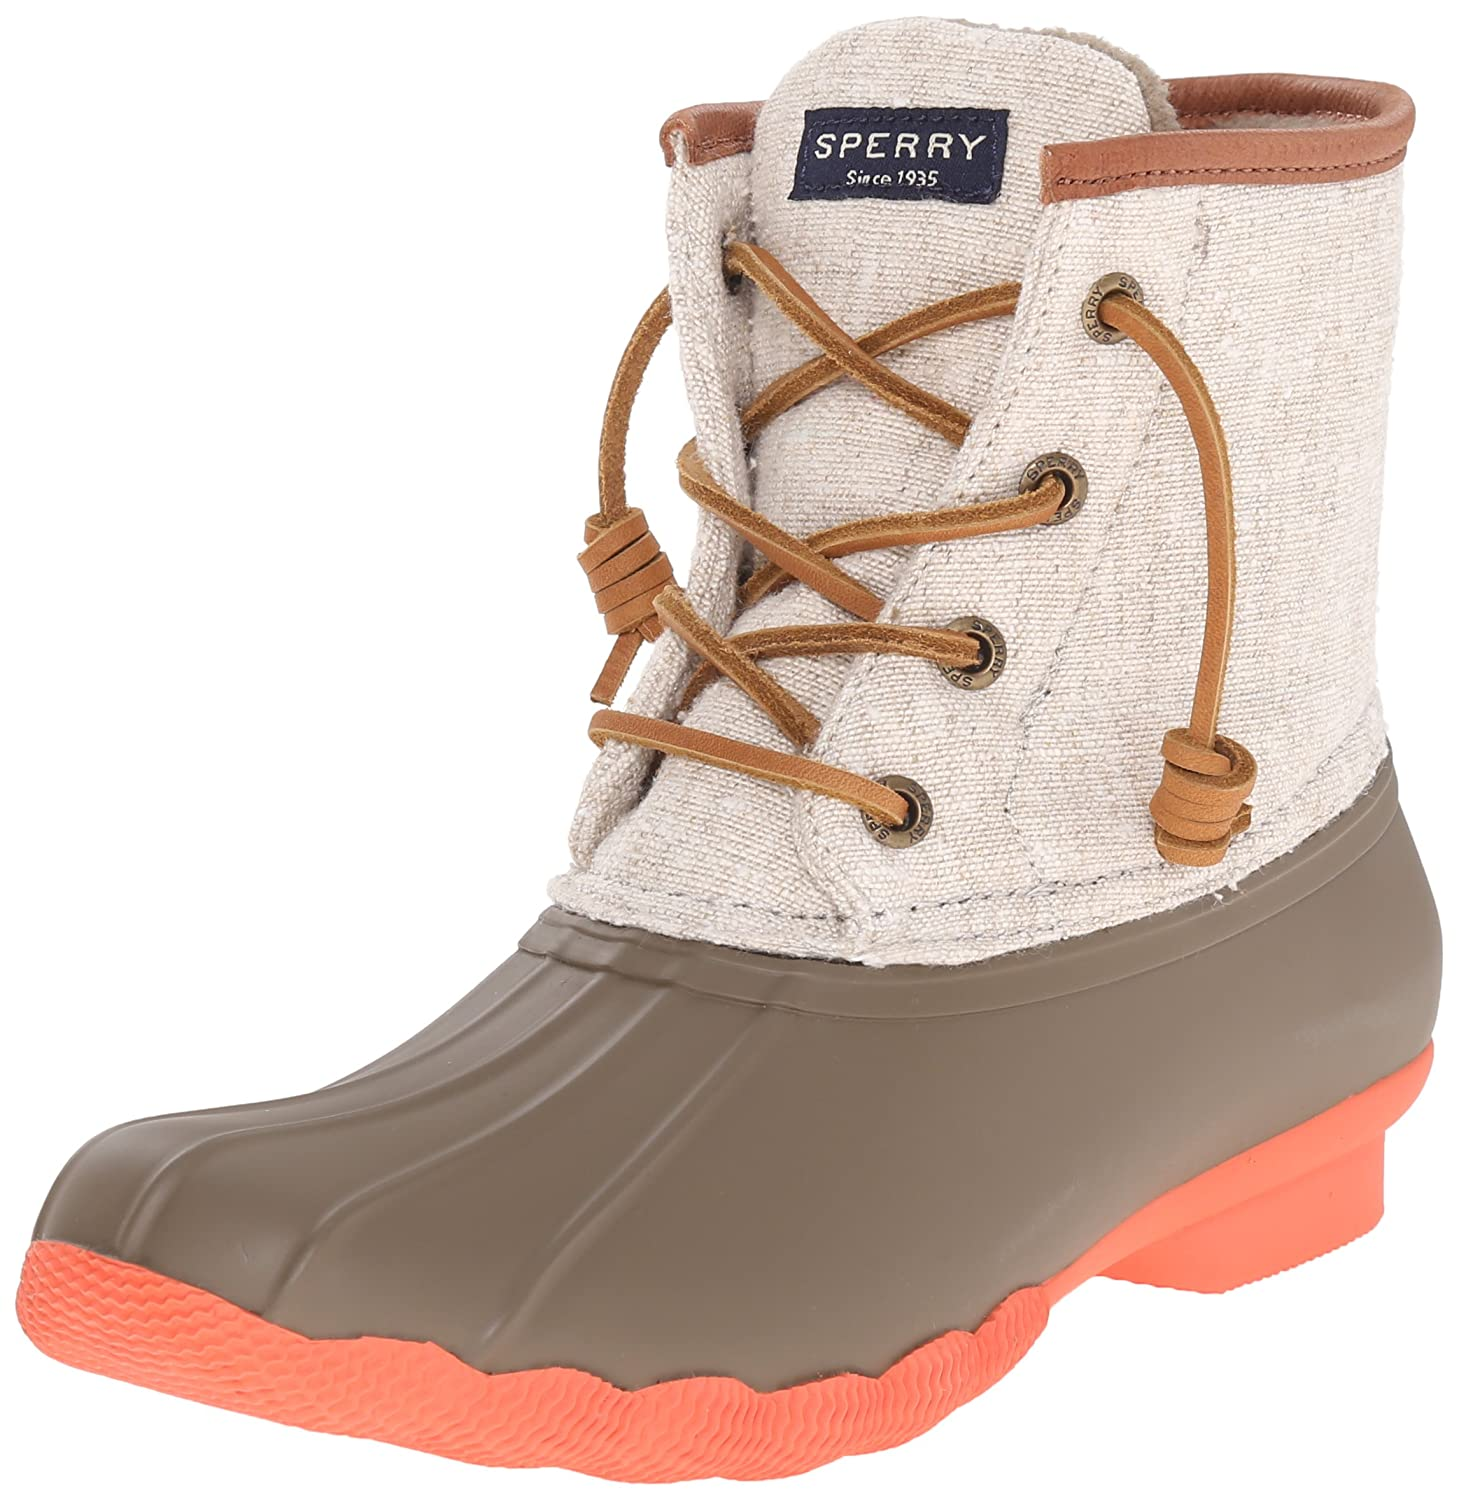 Sperry Top-Sider Women's Saltwater Prints Rain Boot B00VKT2AS0 7.5 B(M) US|Taupe/Natural